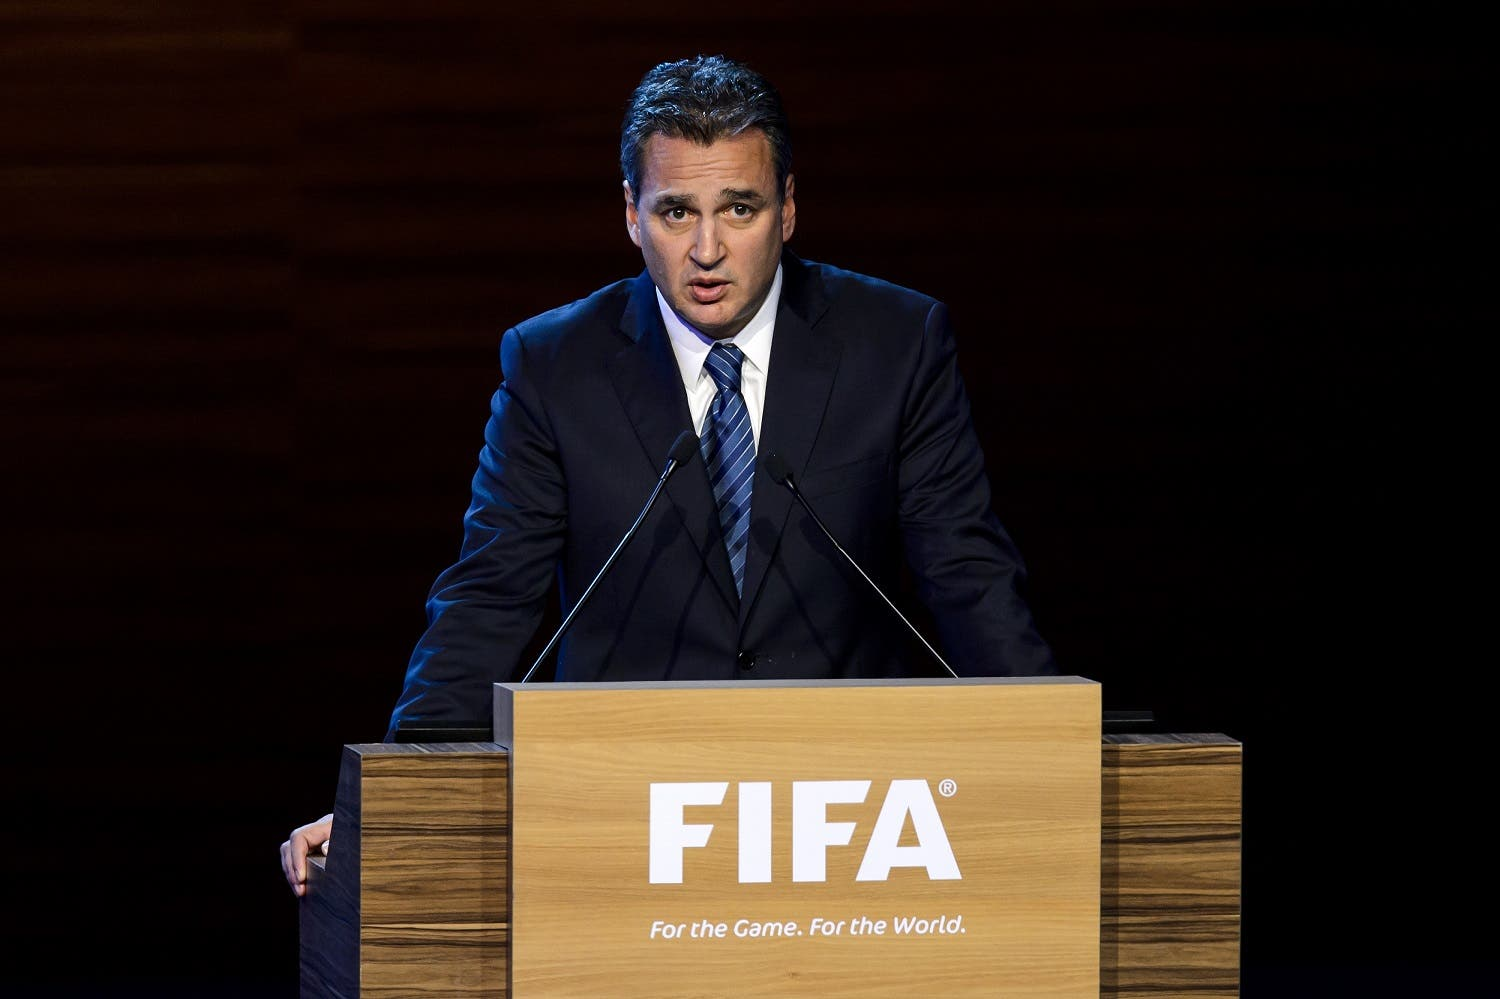 FIFA ethics prosecutor Michael Garcia delivers a speech during the 64th FIFA congress on June 11, 2014 in Sao Paulo, on the eve of the opening match of the 2014 FIFA World Cup in Brazil. AFP PHOTO / FABRICE COFFRINI